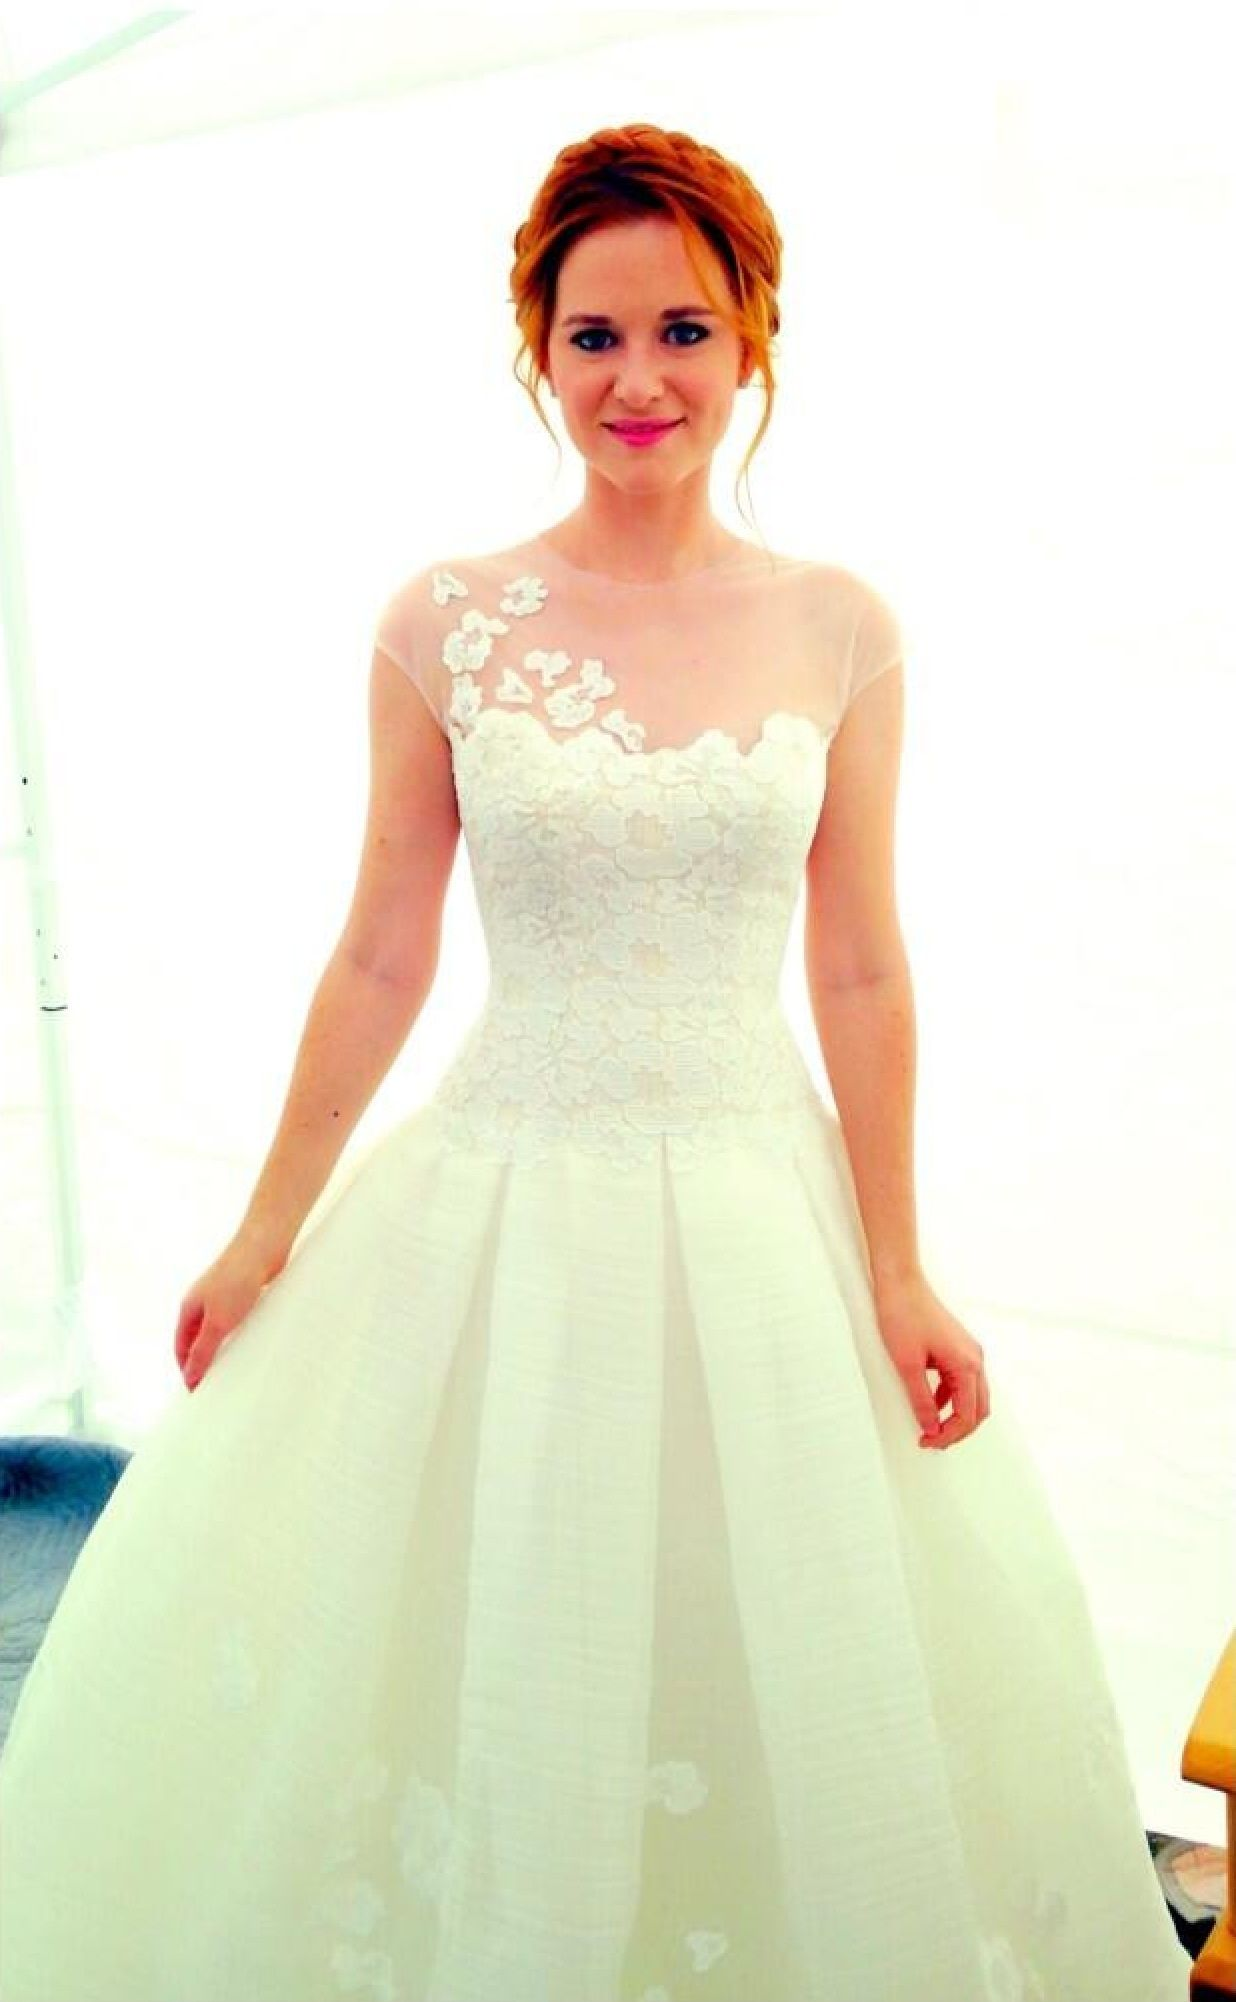 Sarah Drew as April Kepner on Greys Anatomy ♥ I fell in love with her dress, the updo & her barnstyle wedding!